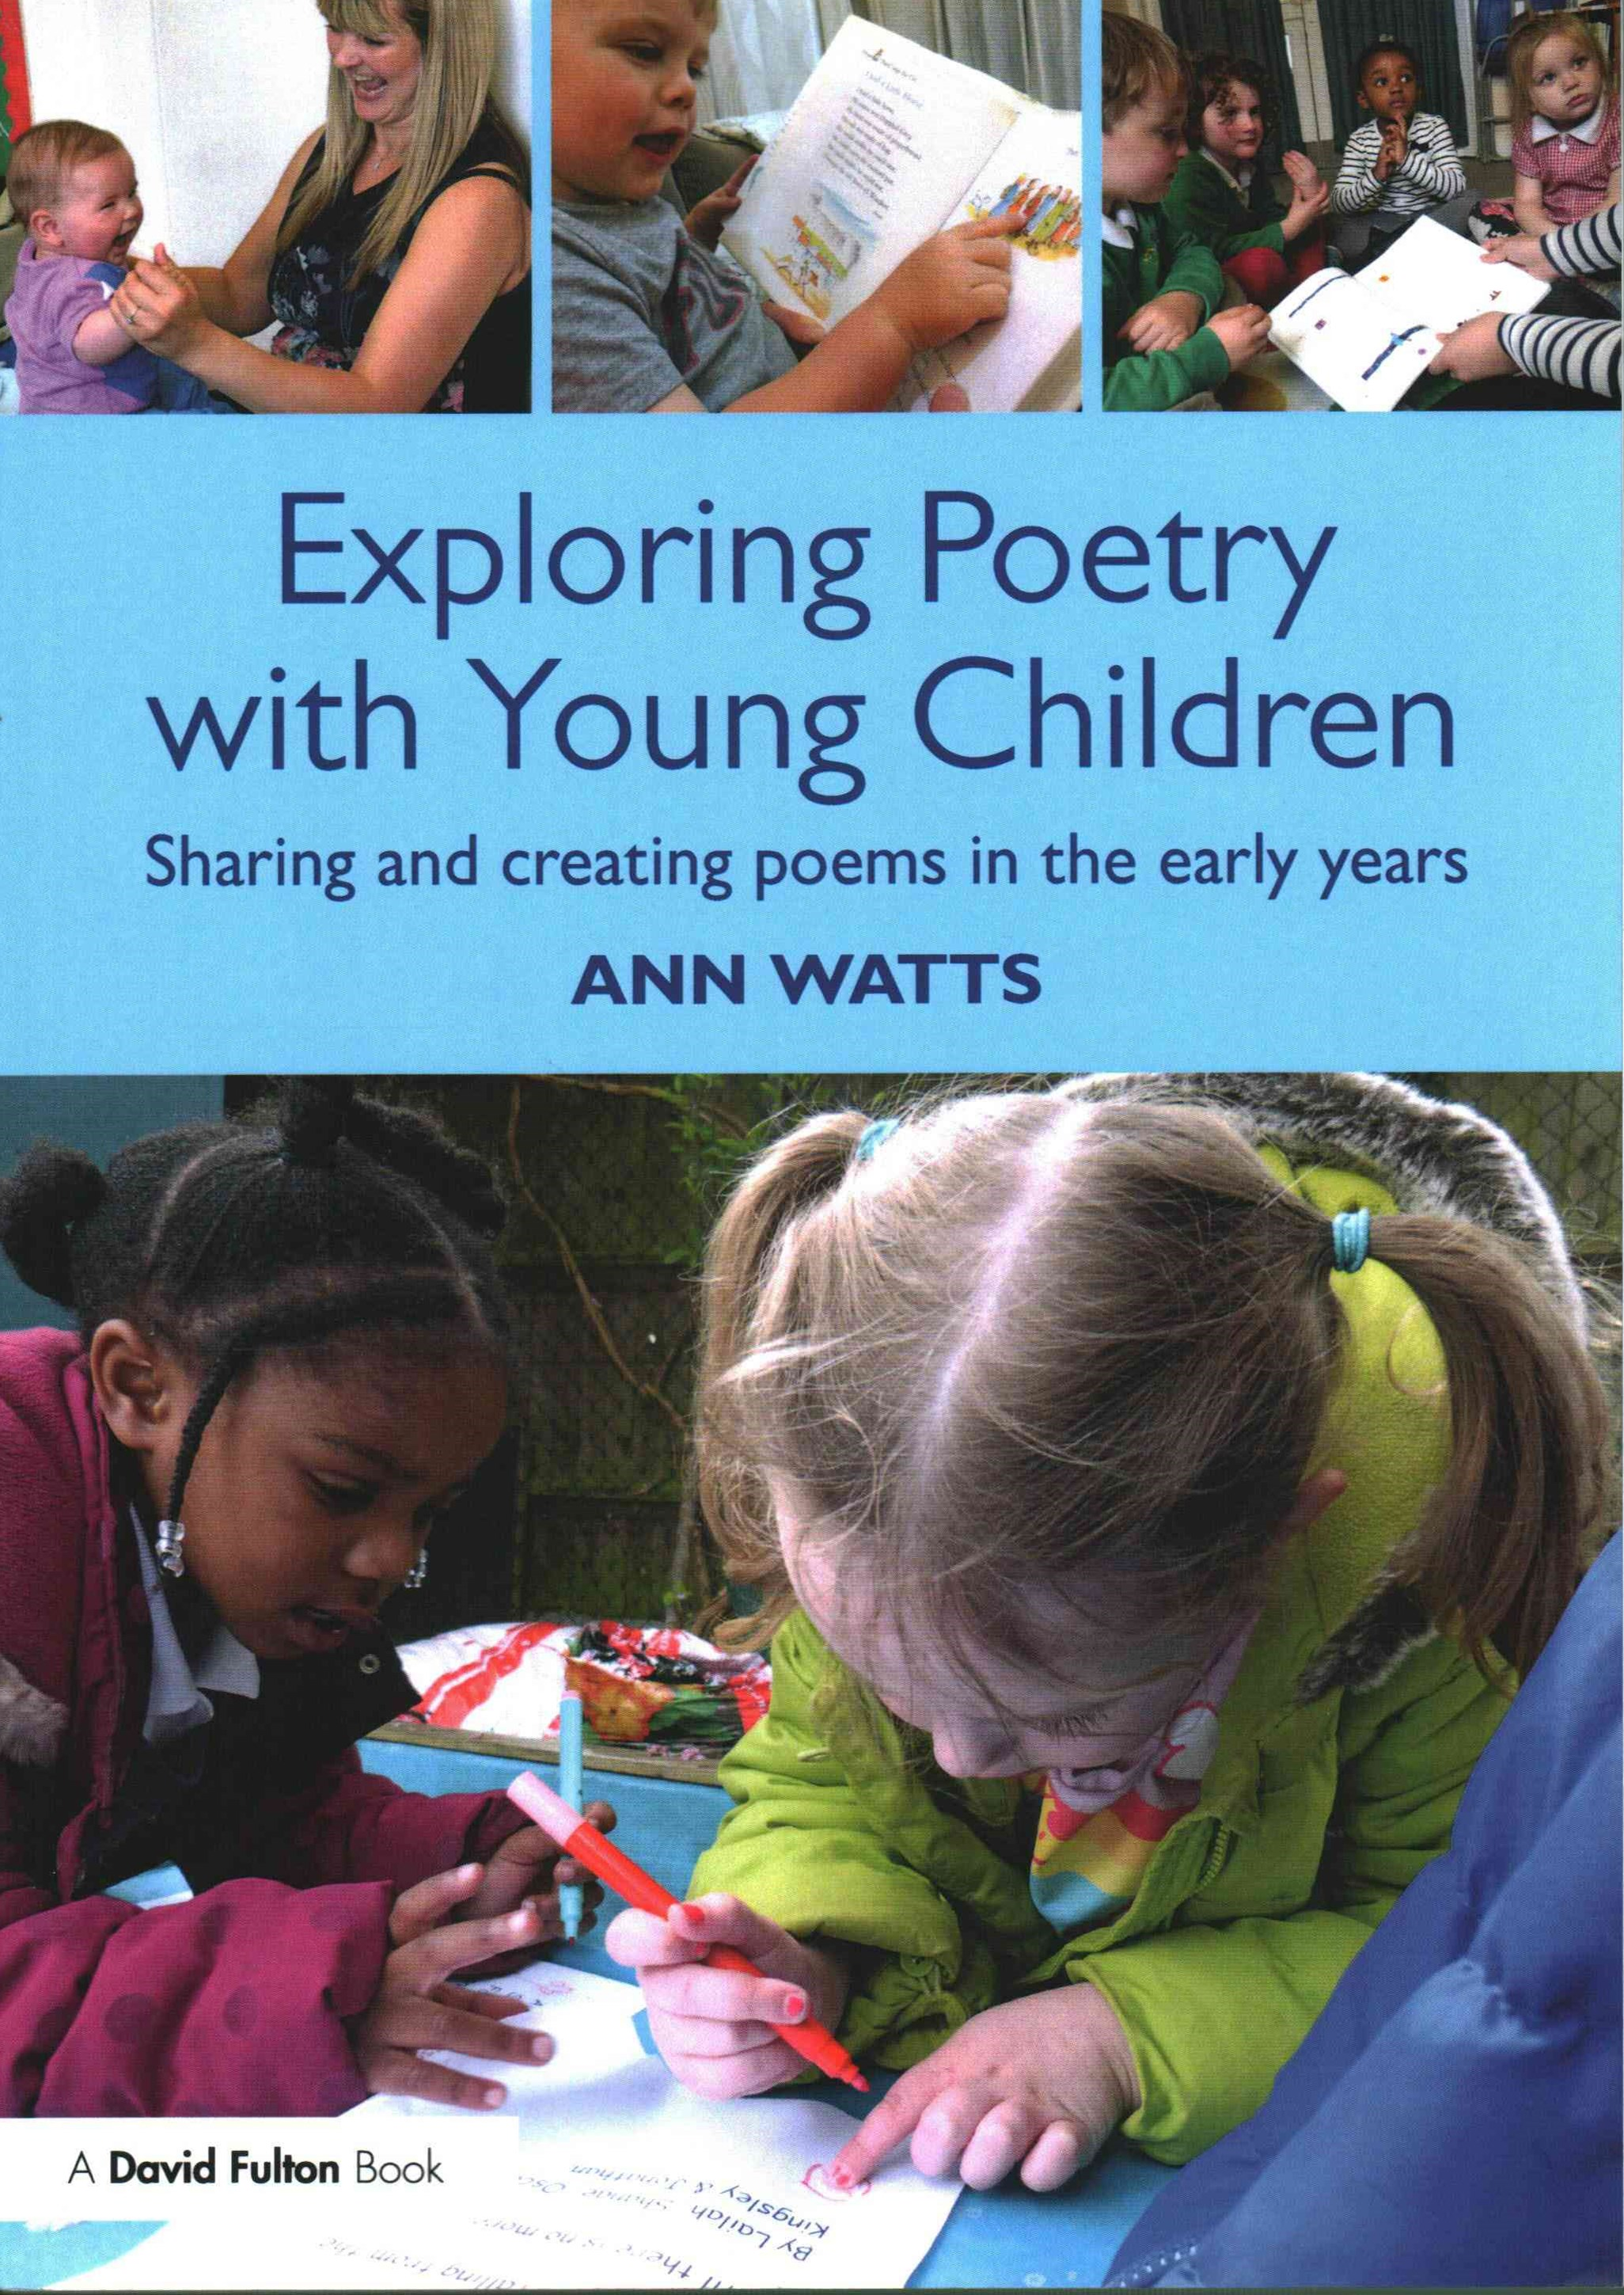 Exploring Poetry in the Early Years